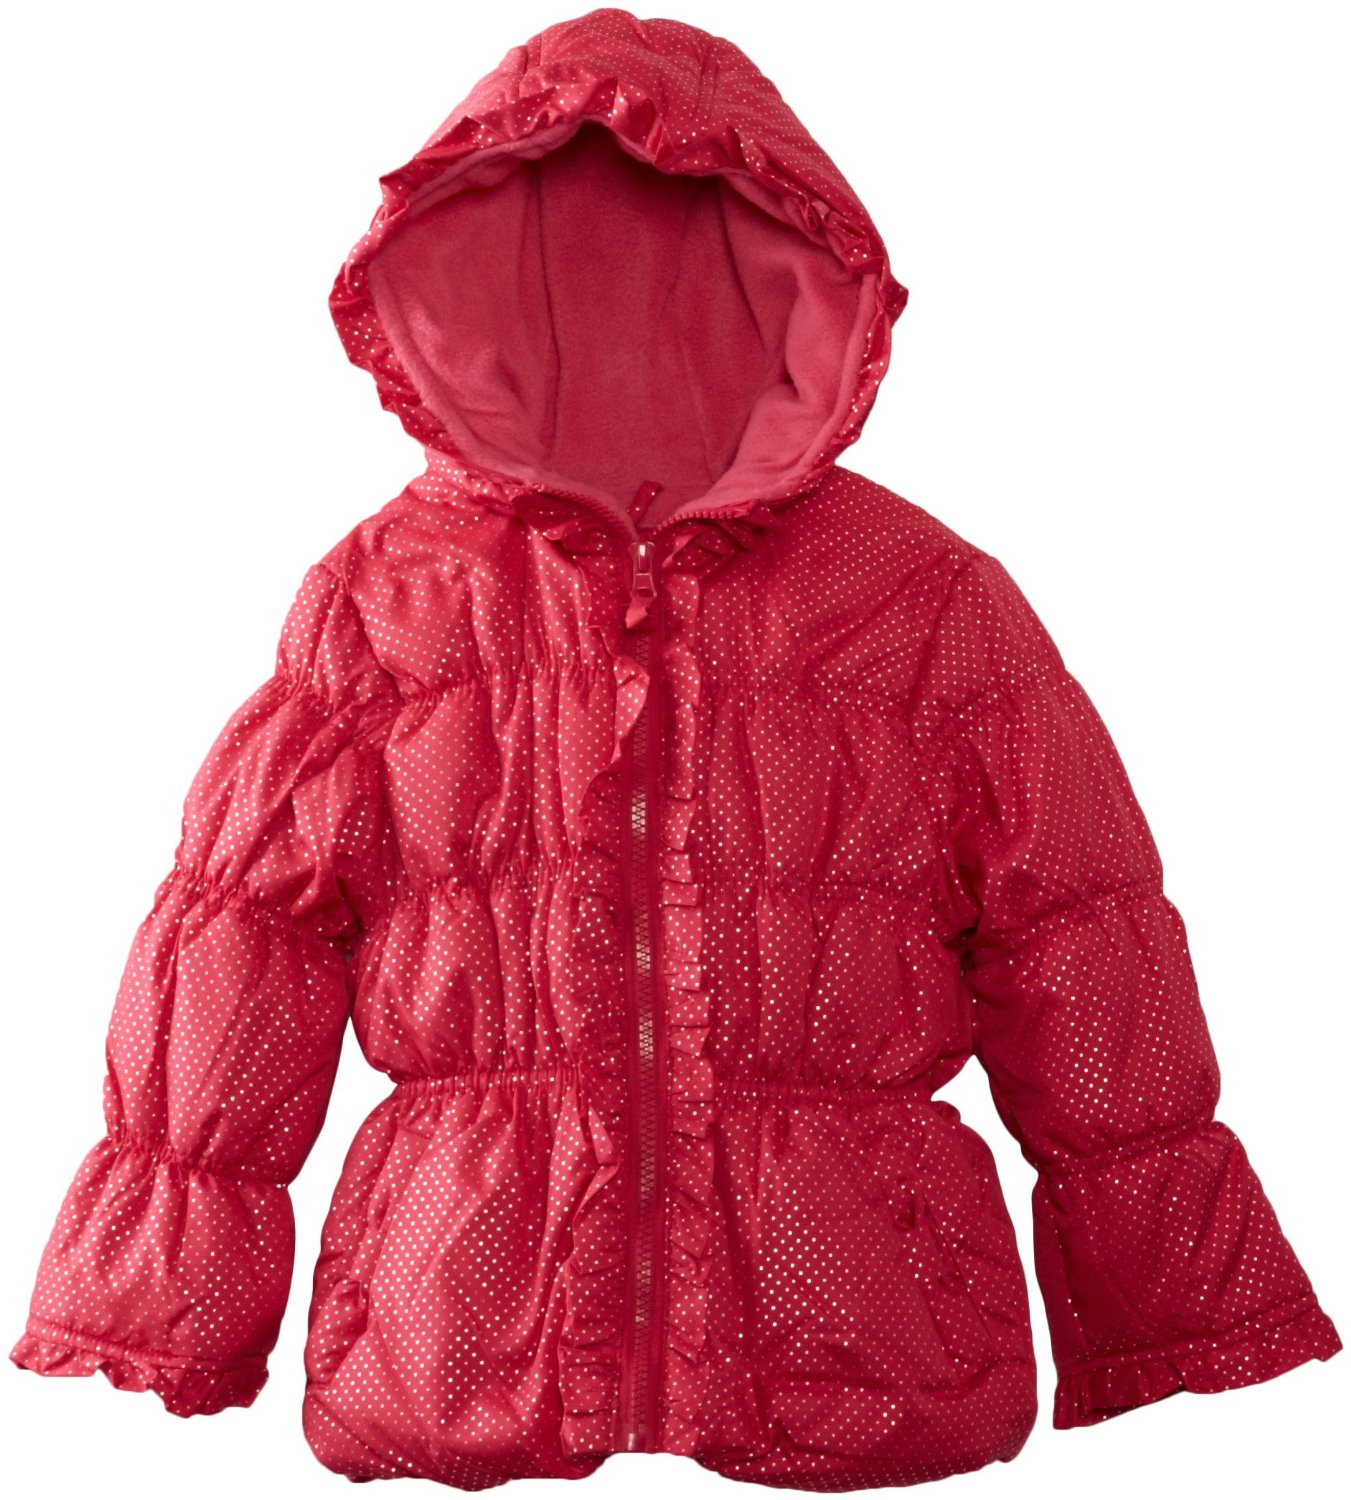 Pink Platinum Baby-Girls Infant Polka Dots Hooded Winter Jacket-Coat at Sears.com